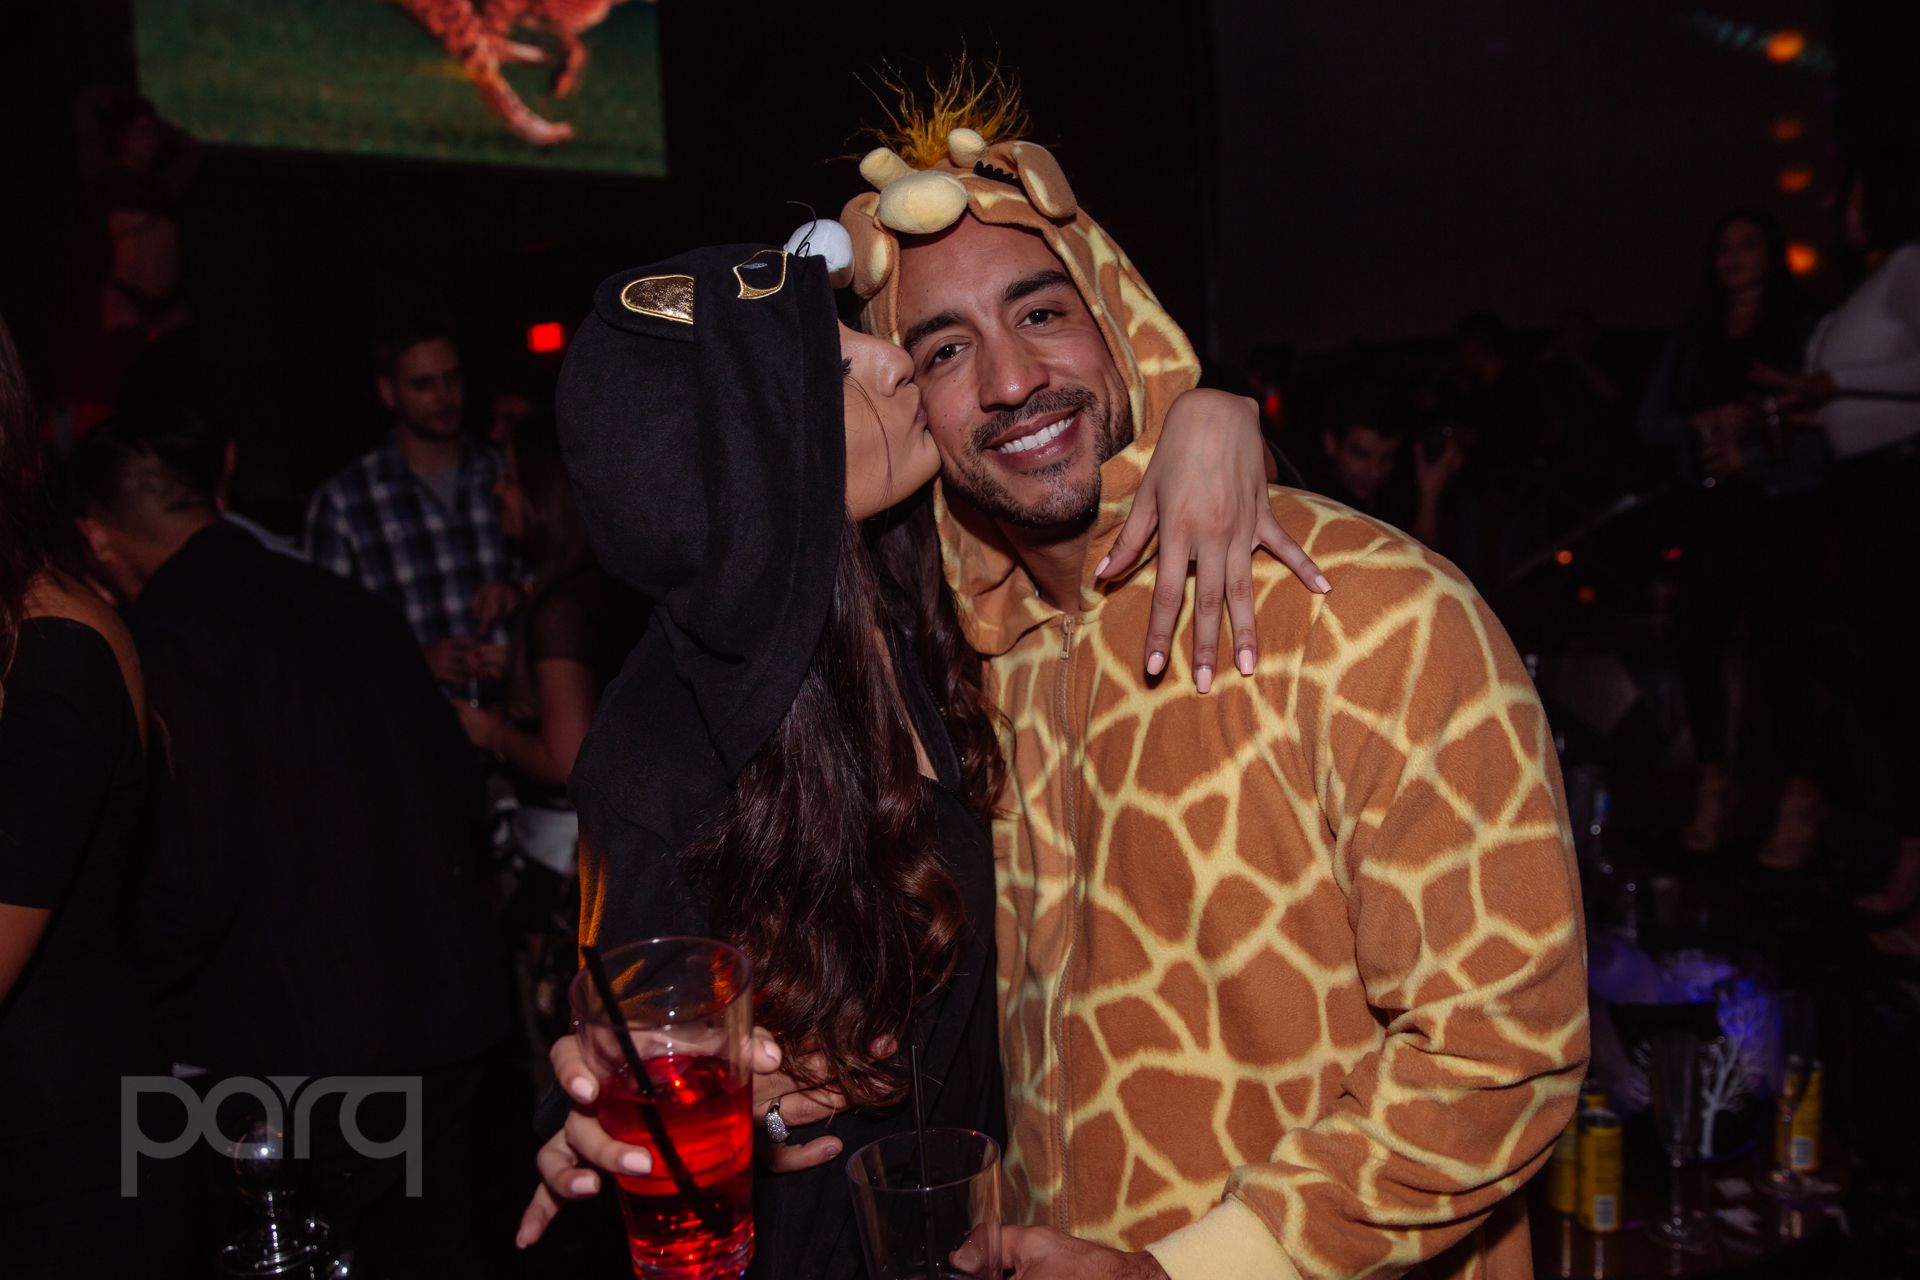 12.16.17 Parq - Zoo Funktion-32.jpg